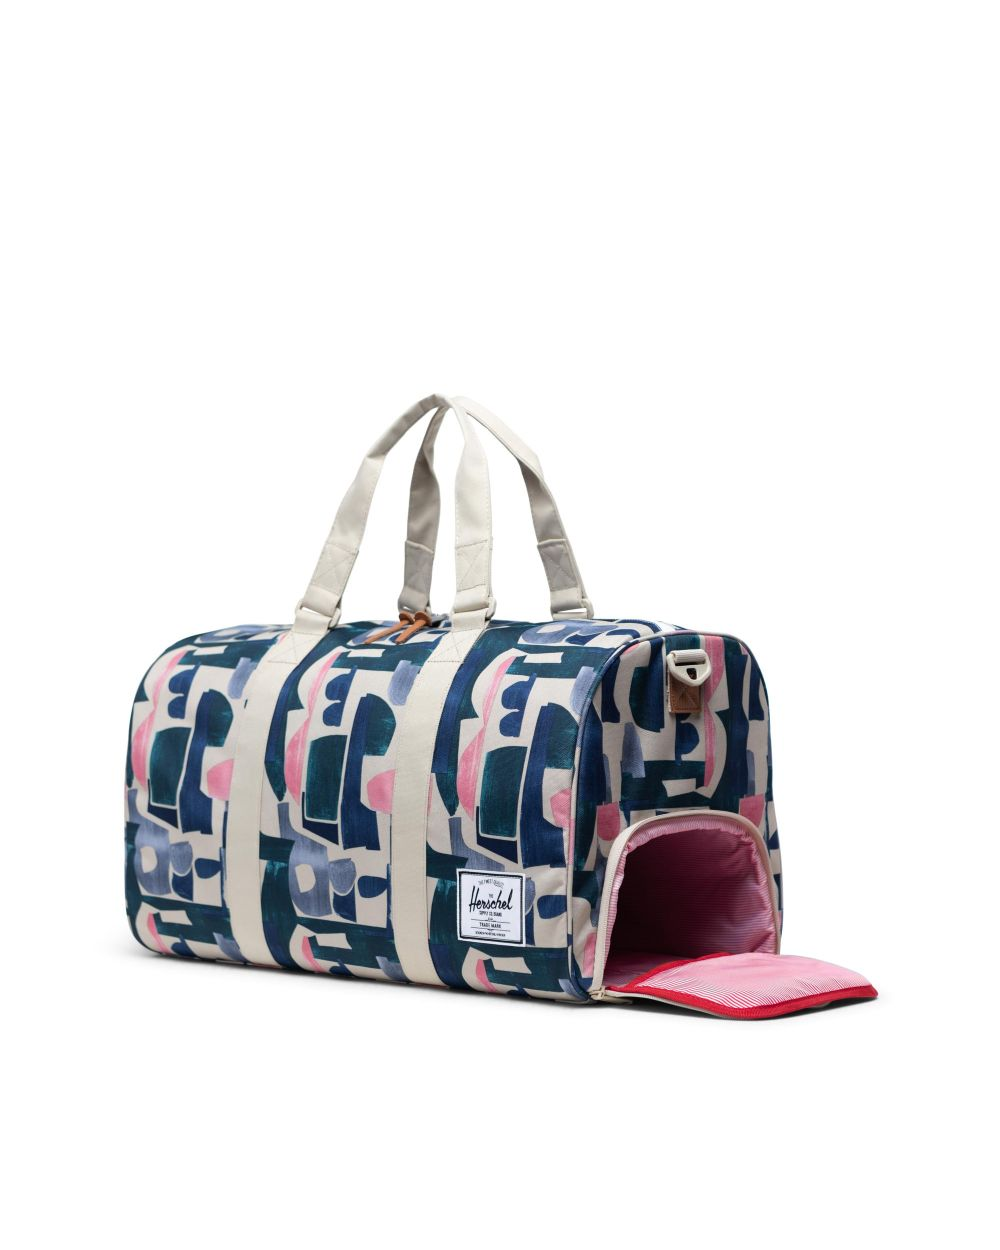 NOVEL DUFFLE - ABSTRACT BLOCK